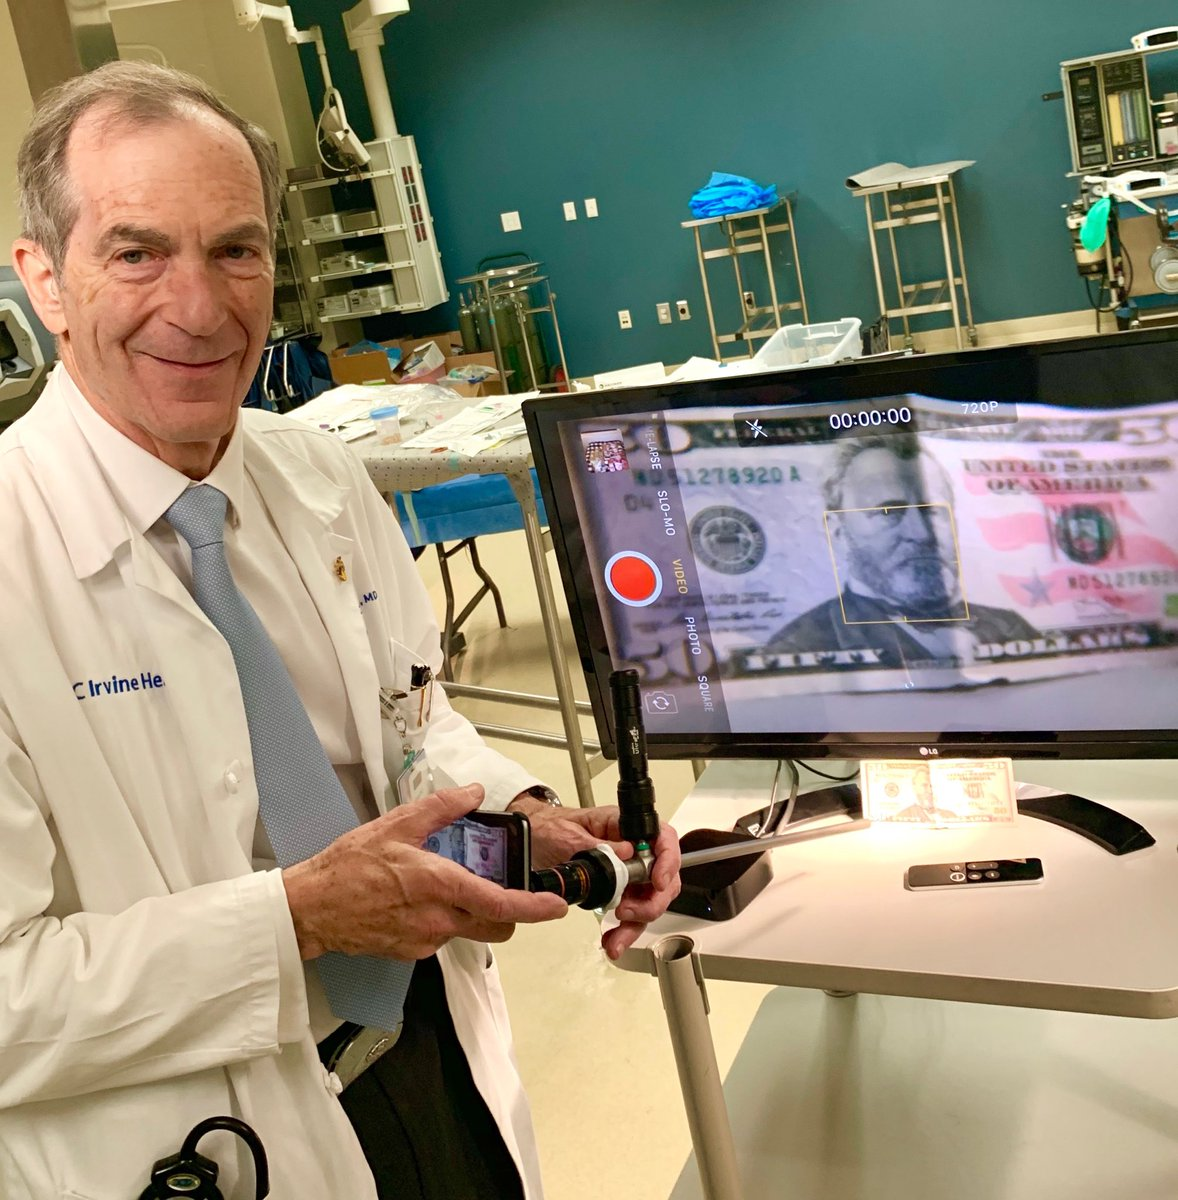 Dr. Clayman using the first wireless laparoscopic camera system in lab today!  Endockscope concept using standard Apple AirPlay and total cost of entire optical system on screen ($50)!  Go UCI lab team innovation!!!